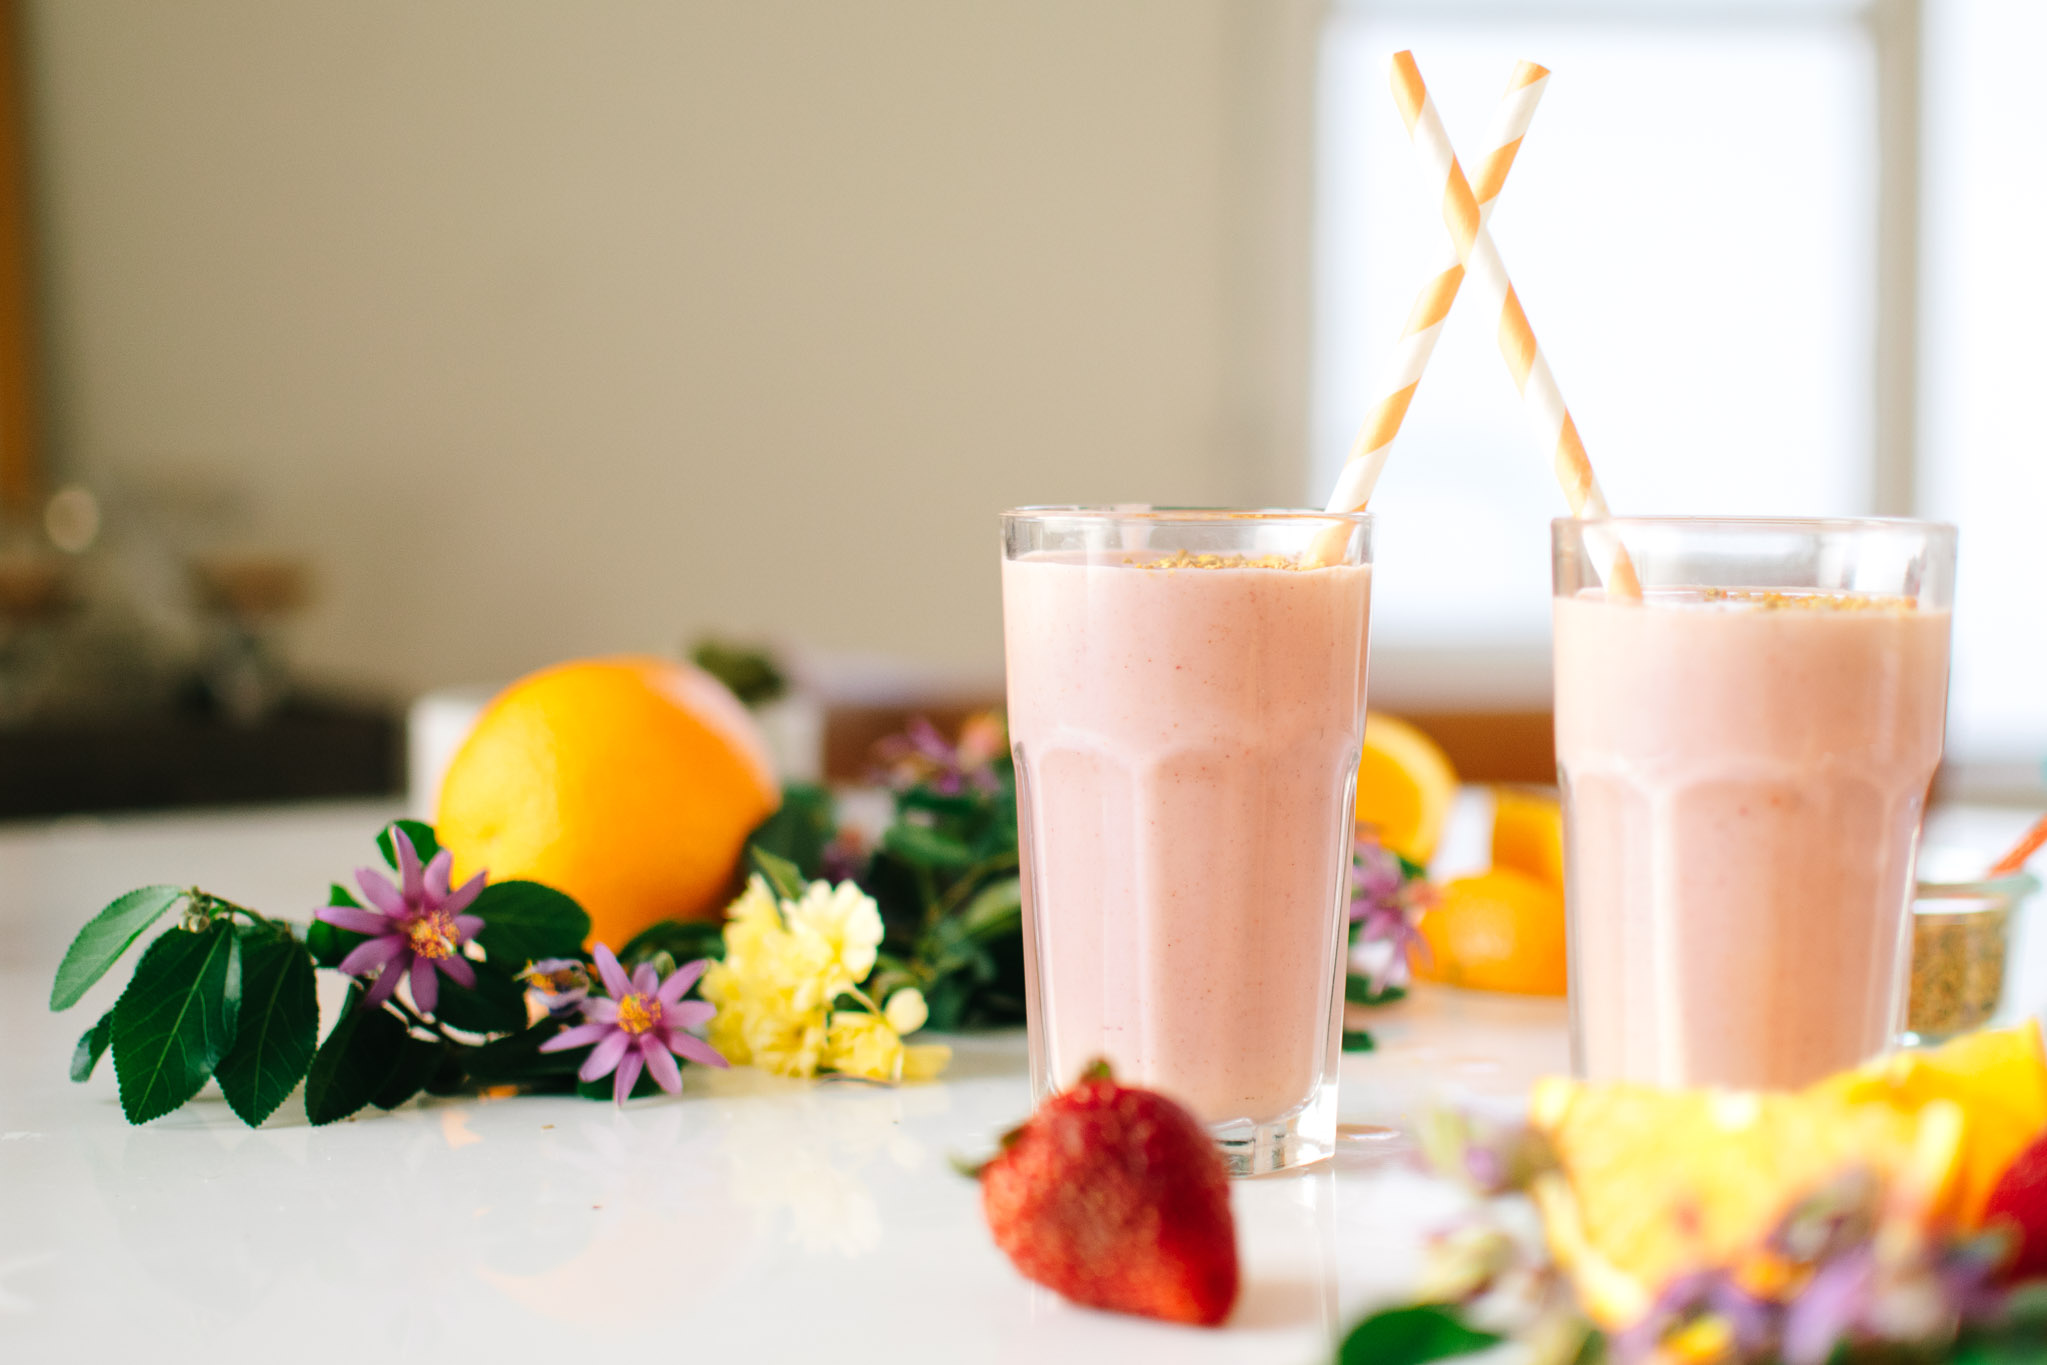 Strawberry Orange Blossom Creamsicle Smoothie